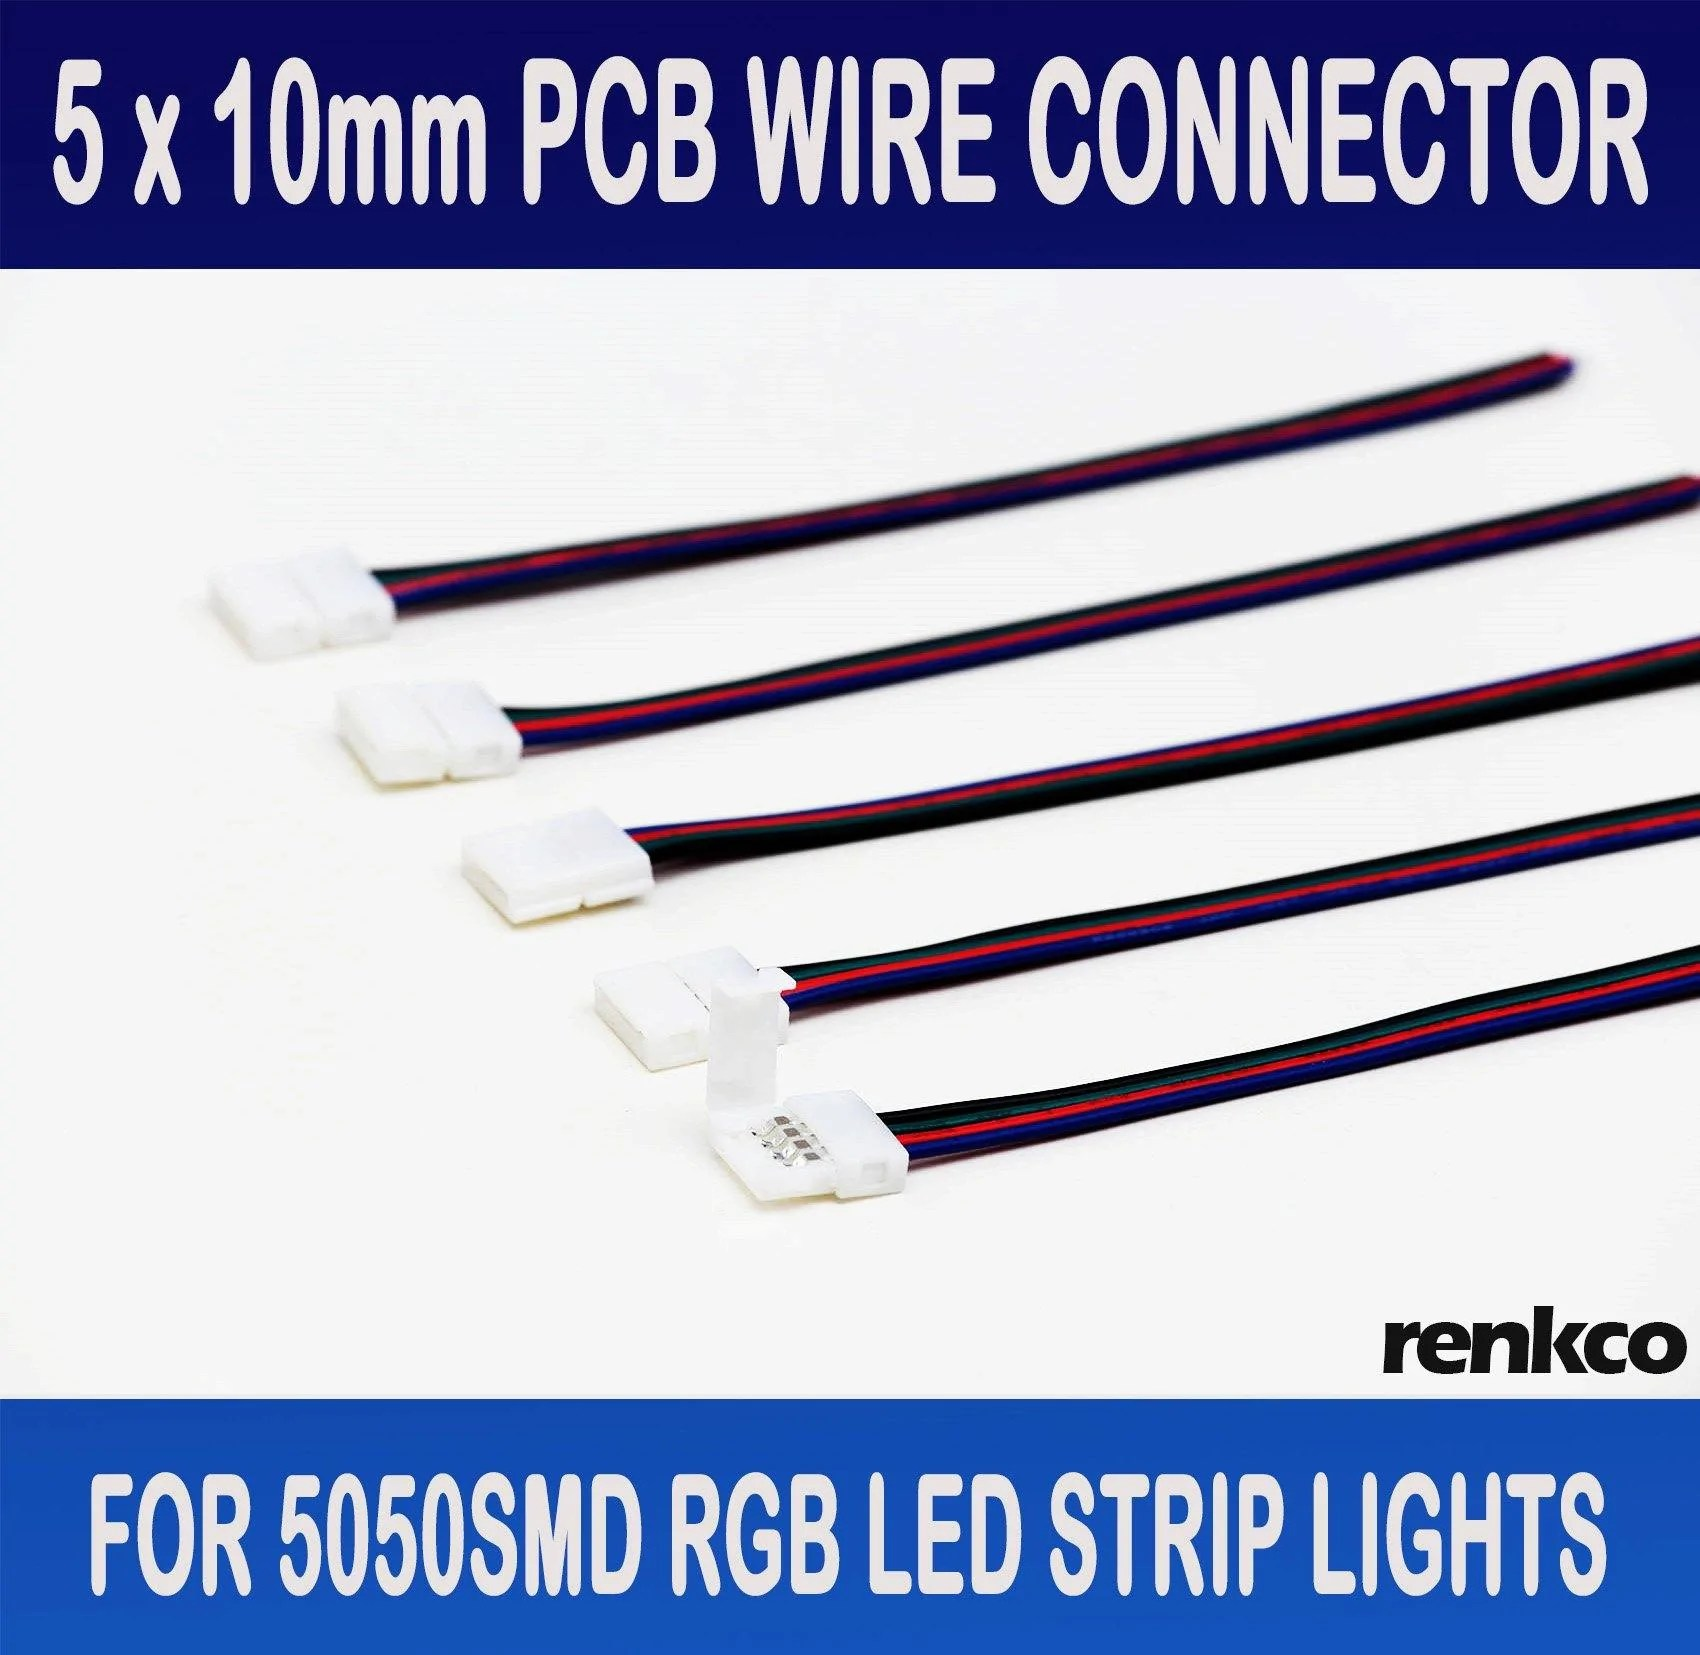 hight resolution of renkco 5pcs 10mm pcb board with wire connector for 5050 rgb led strip lights leds